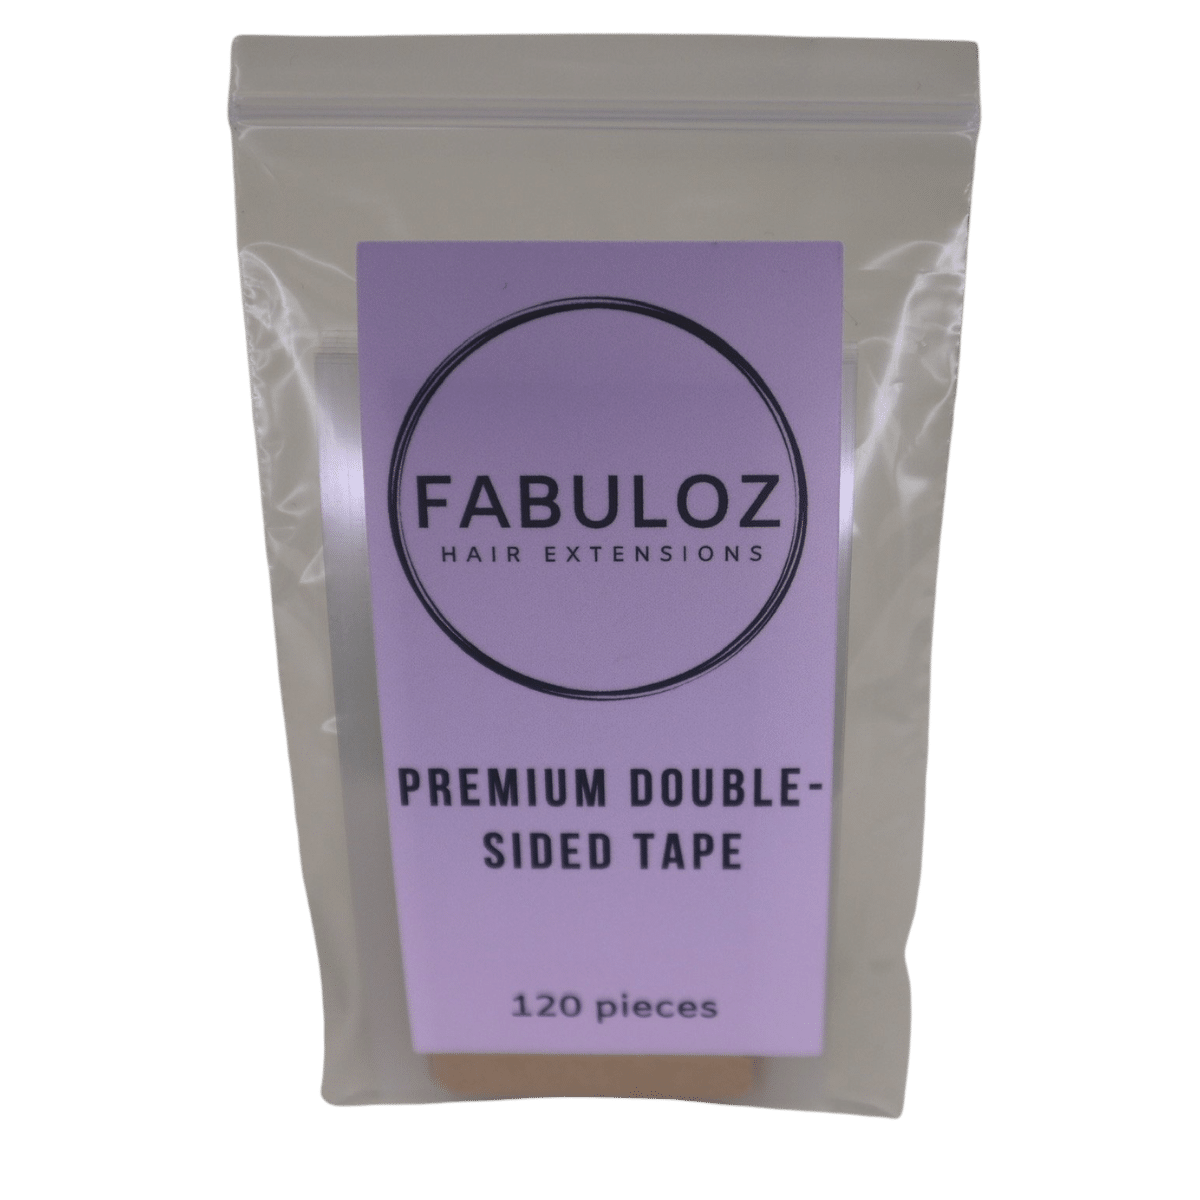 Fabuloz Double Sided Tape